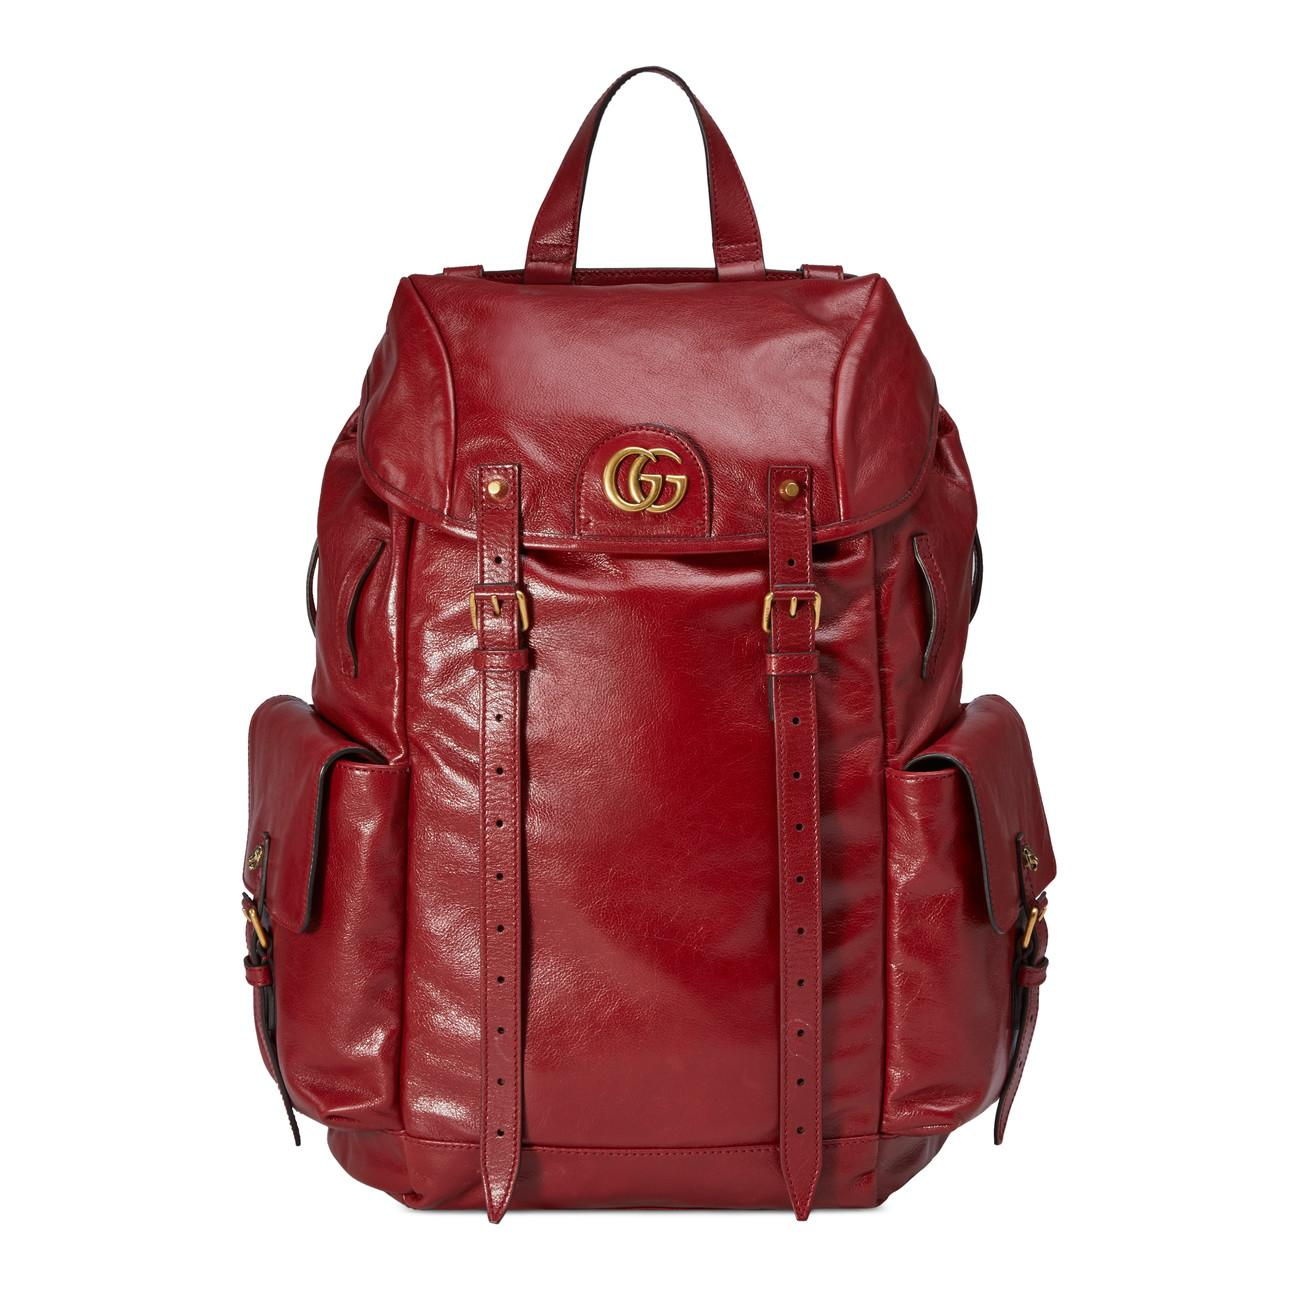 13686f64976c Gucci Re(belle) Leather Backpack in Red for Men - Lyst